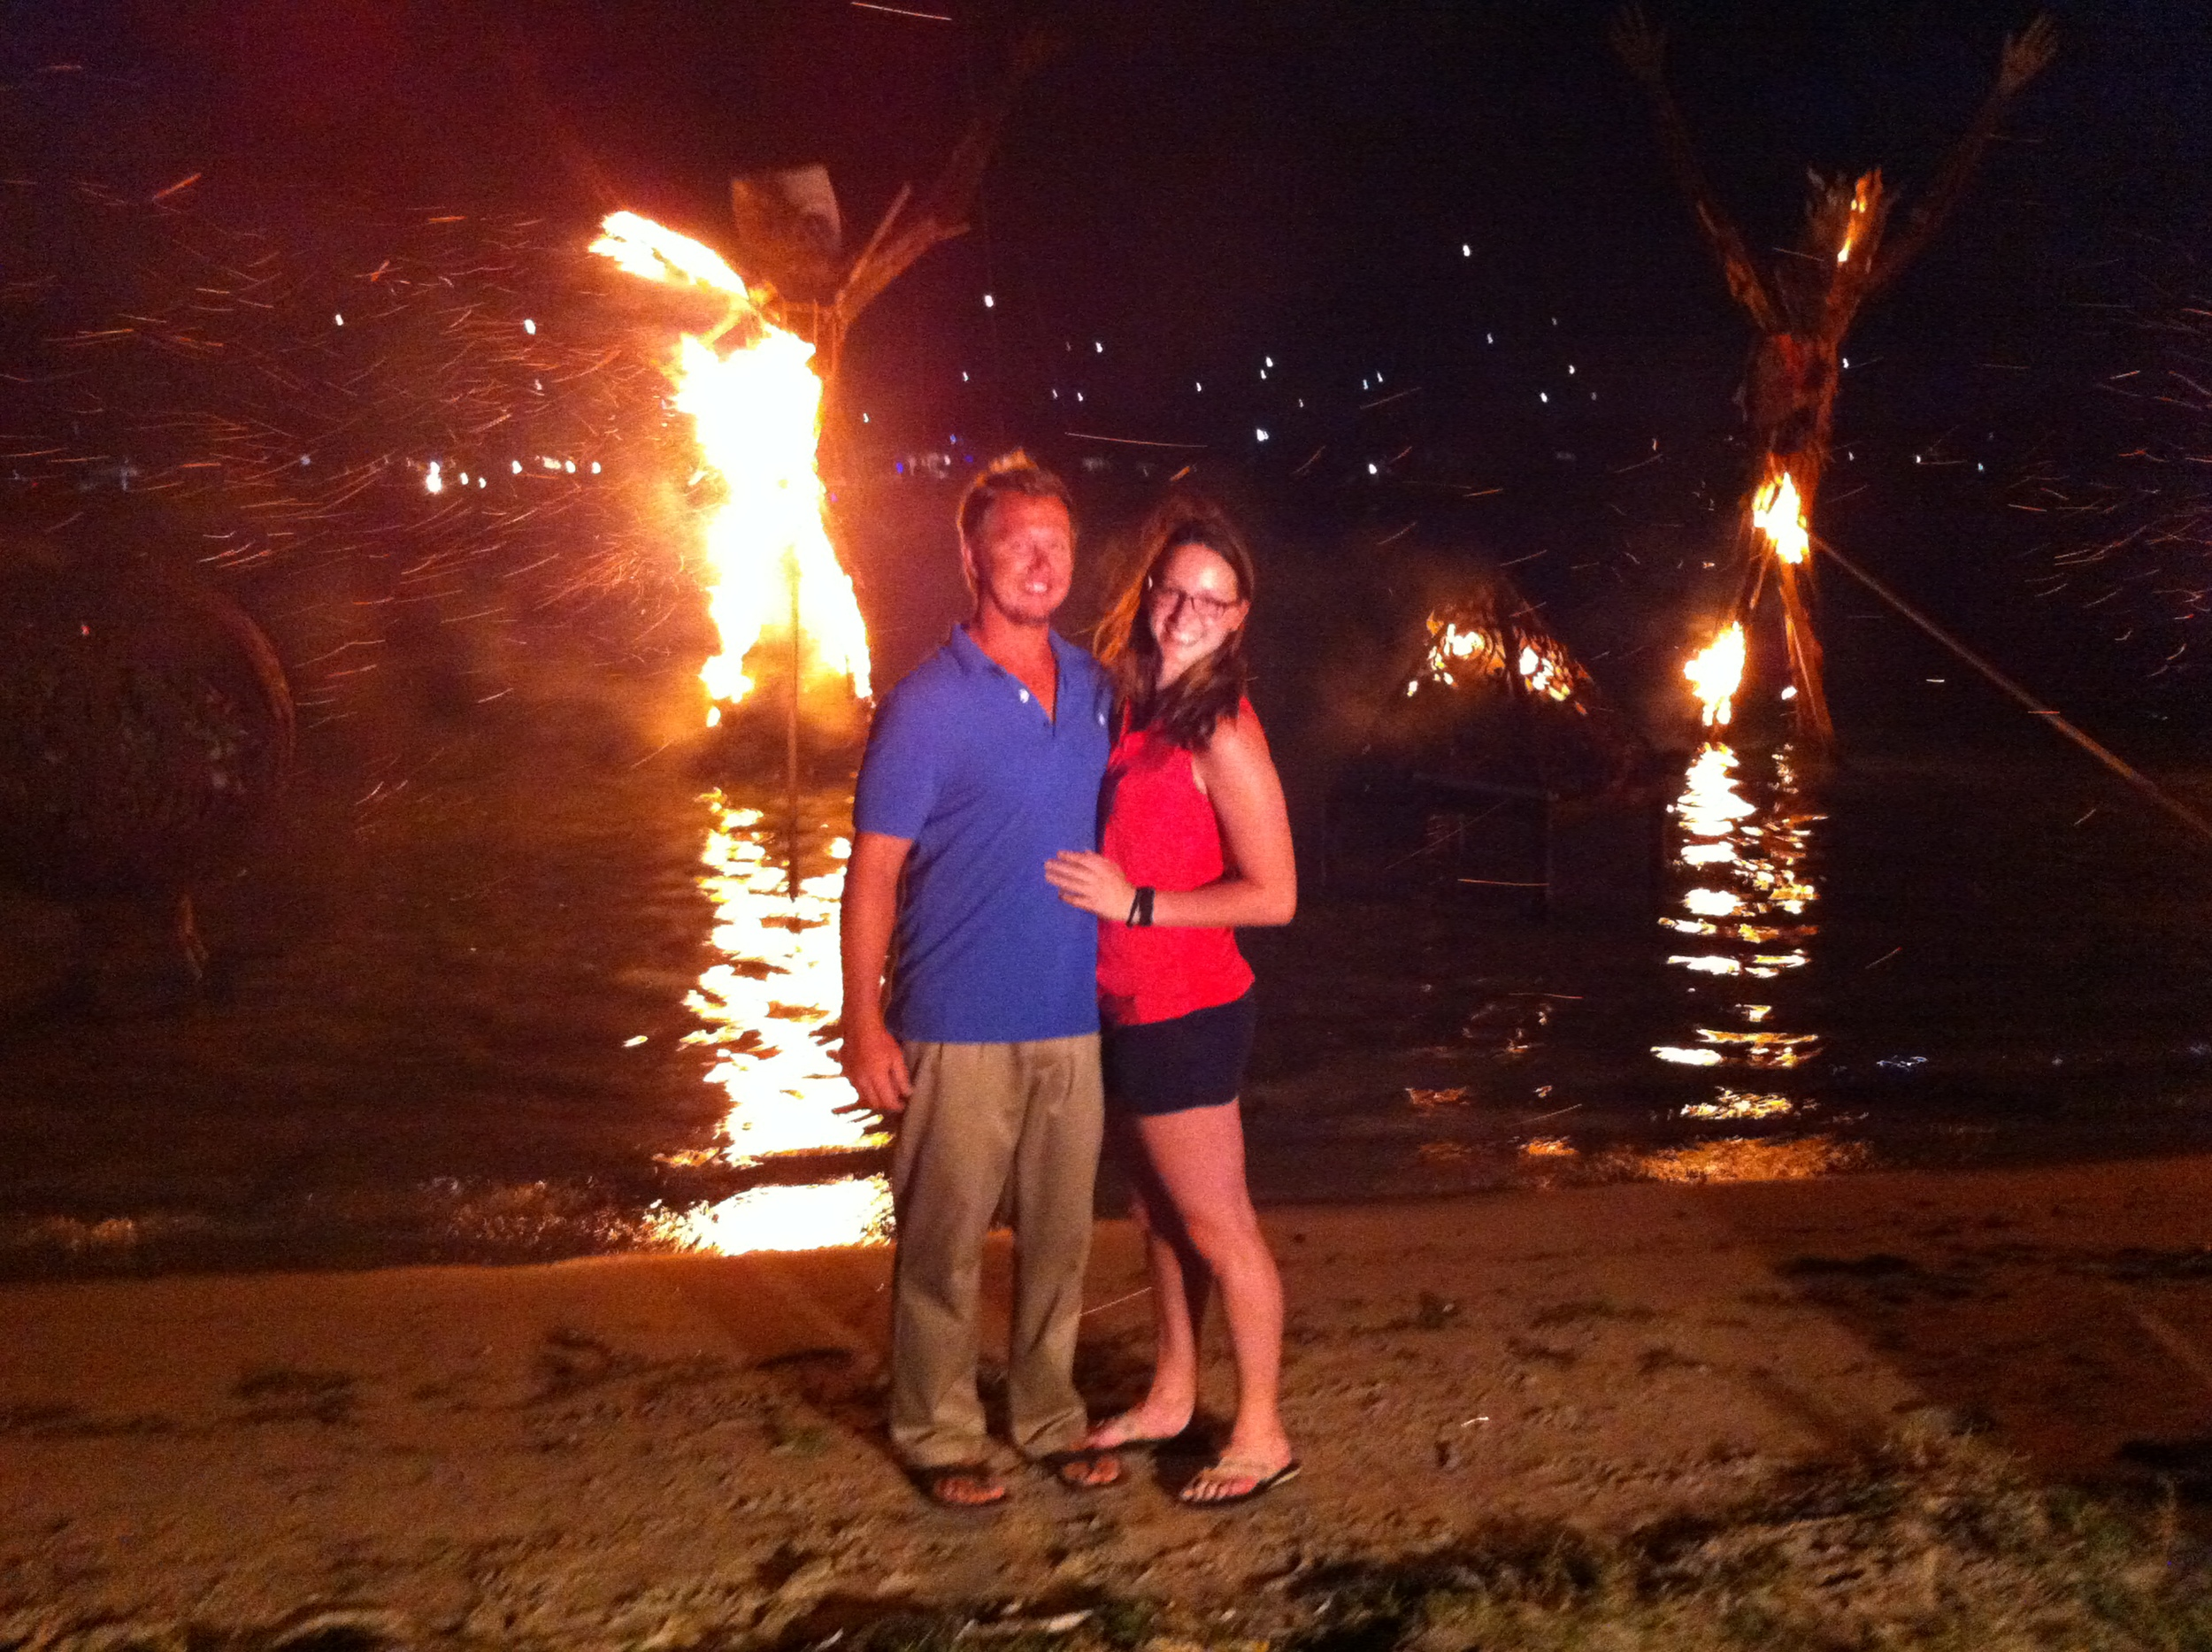 Jonathan and Katherine at the Full Moon Party